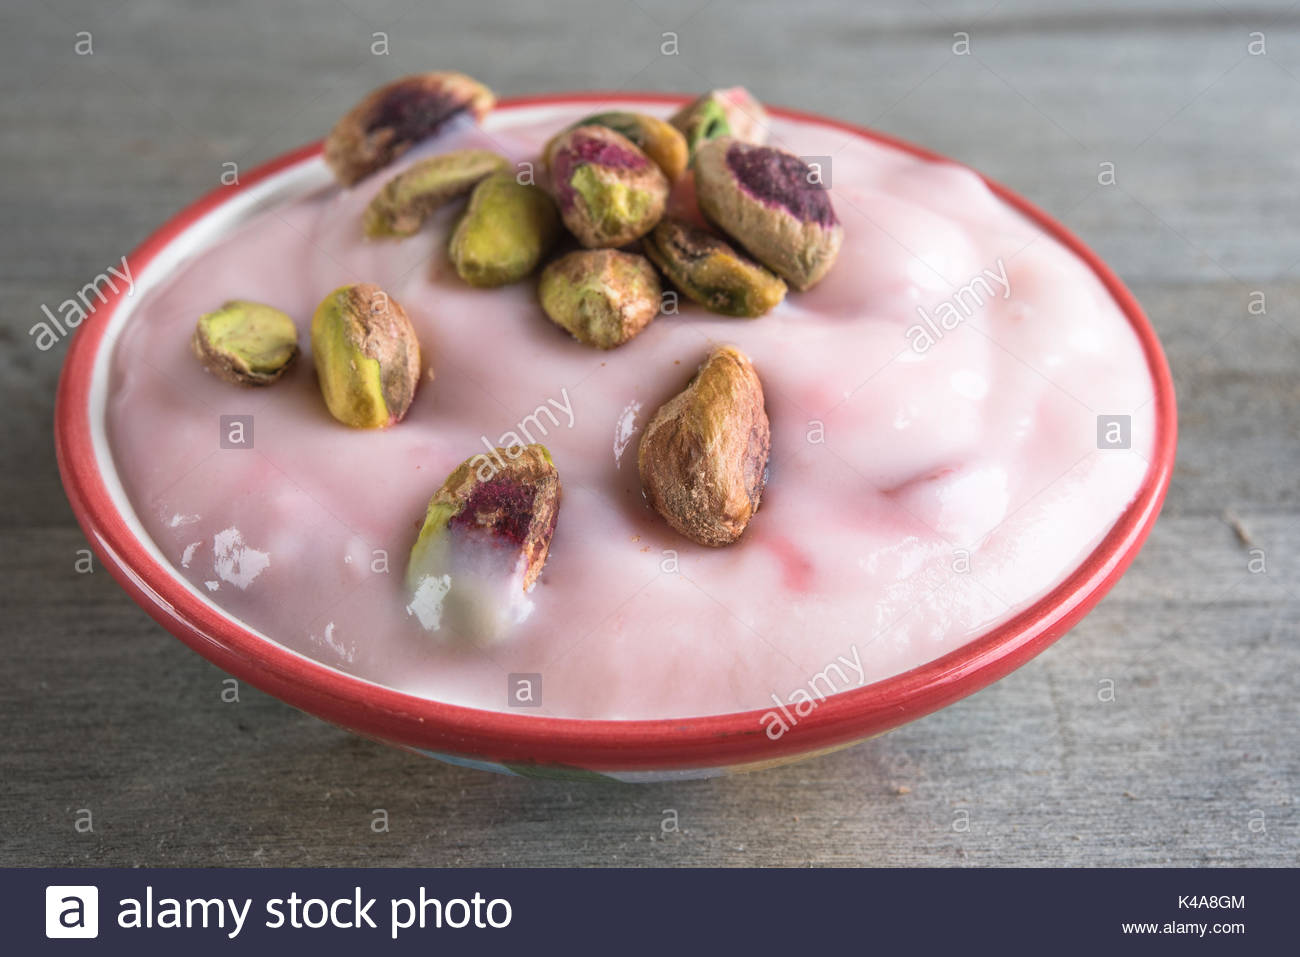 Healthy eating: strawberry yogurt with pistachio nuts. - Stock Image